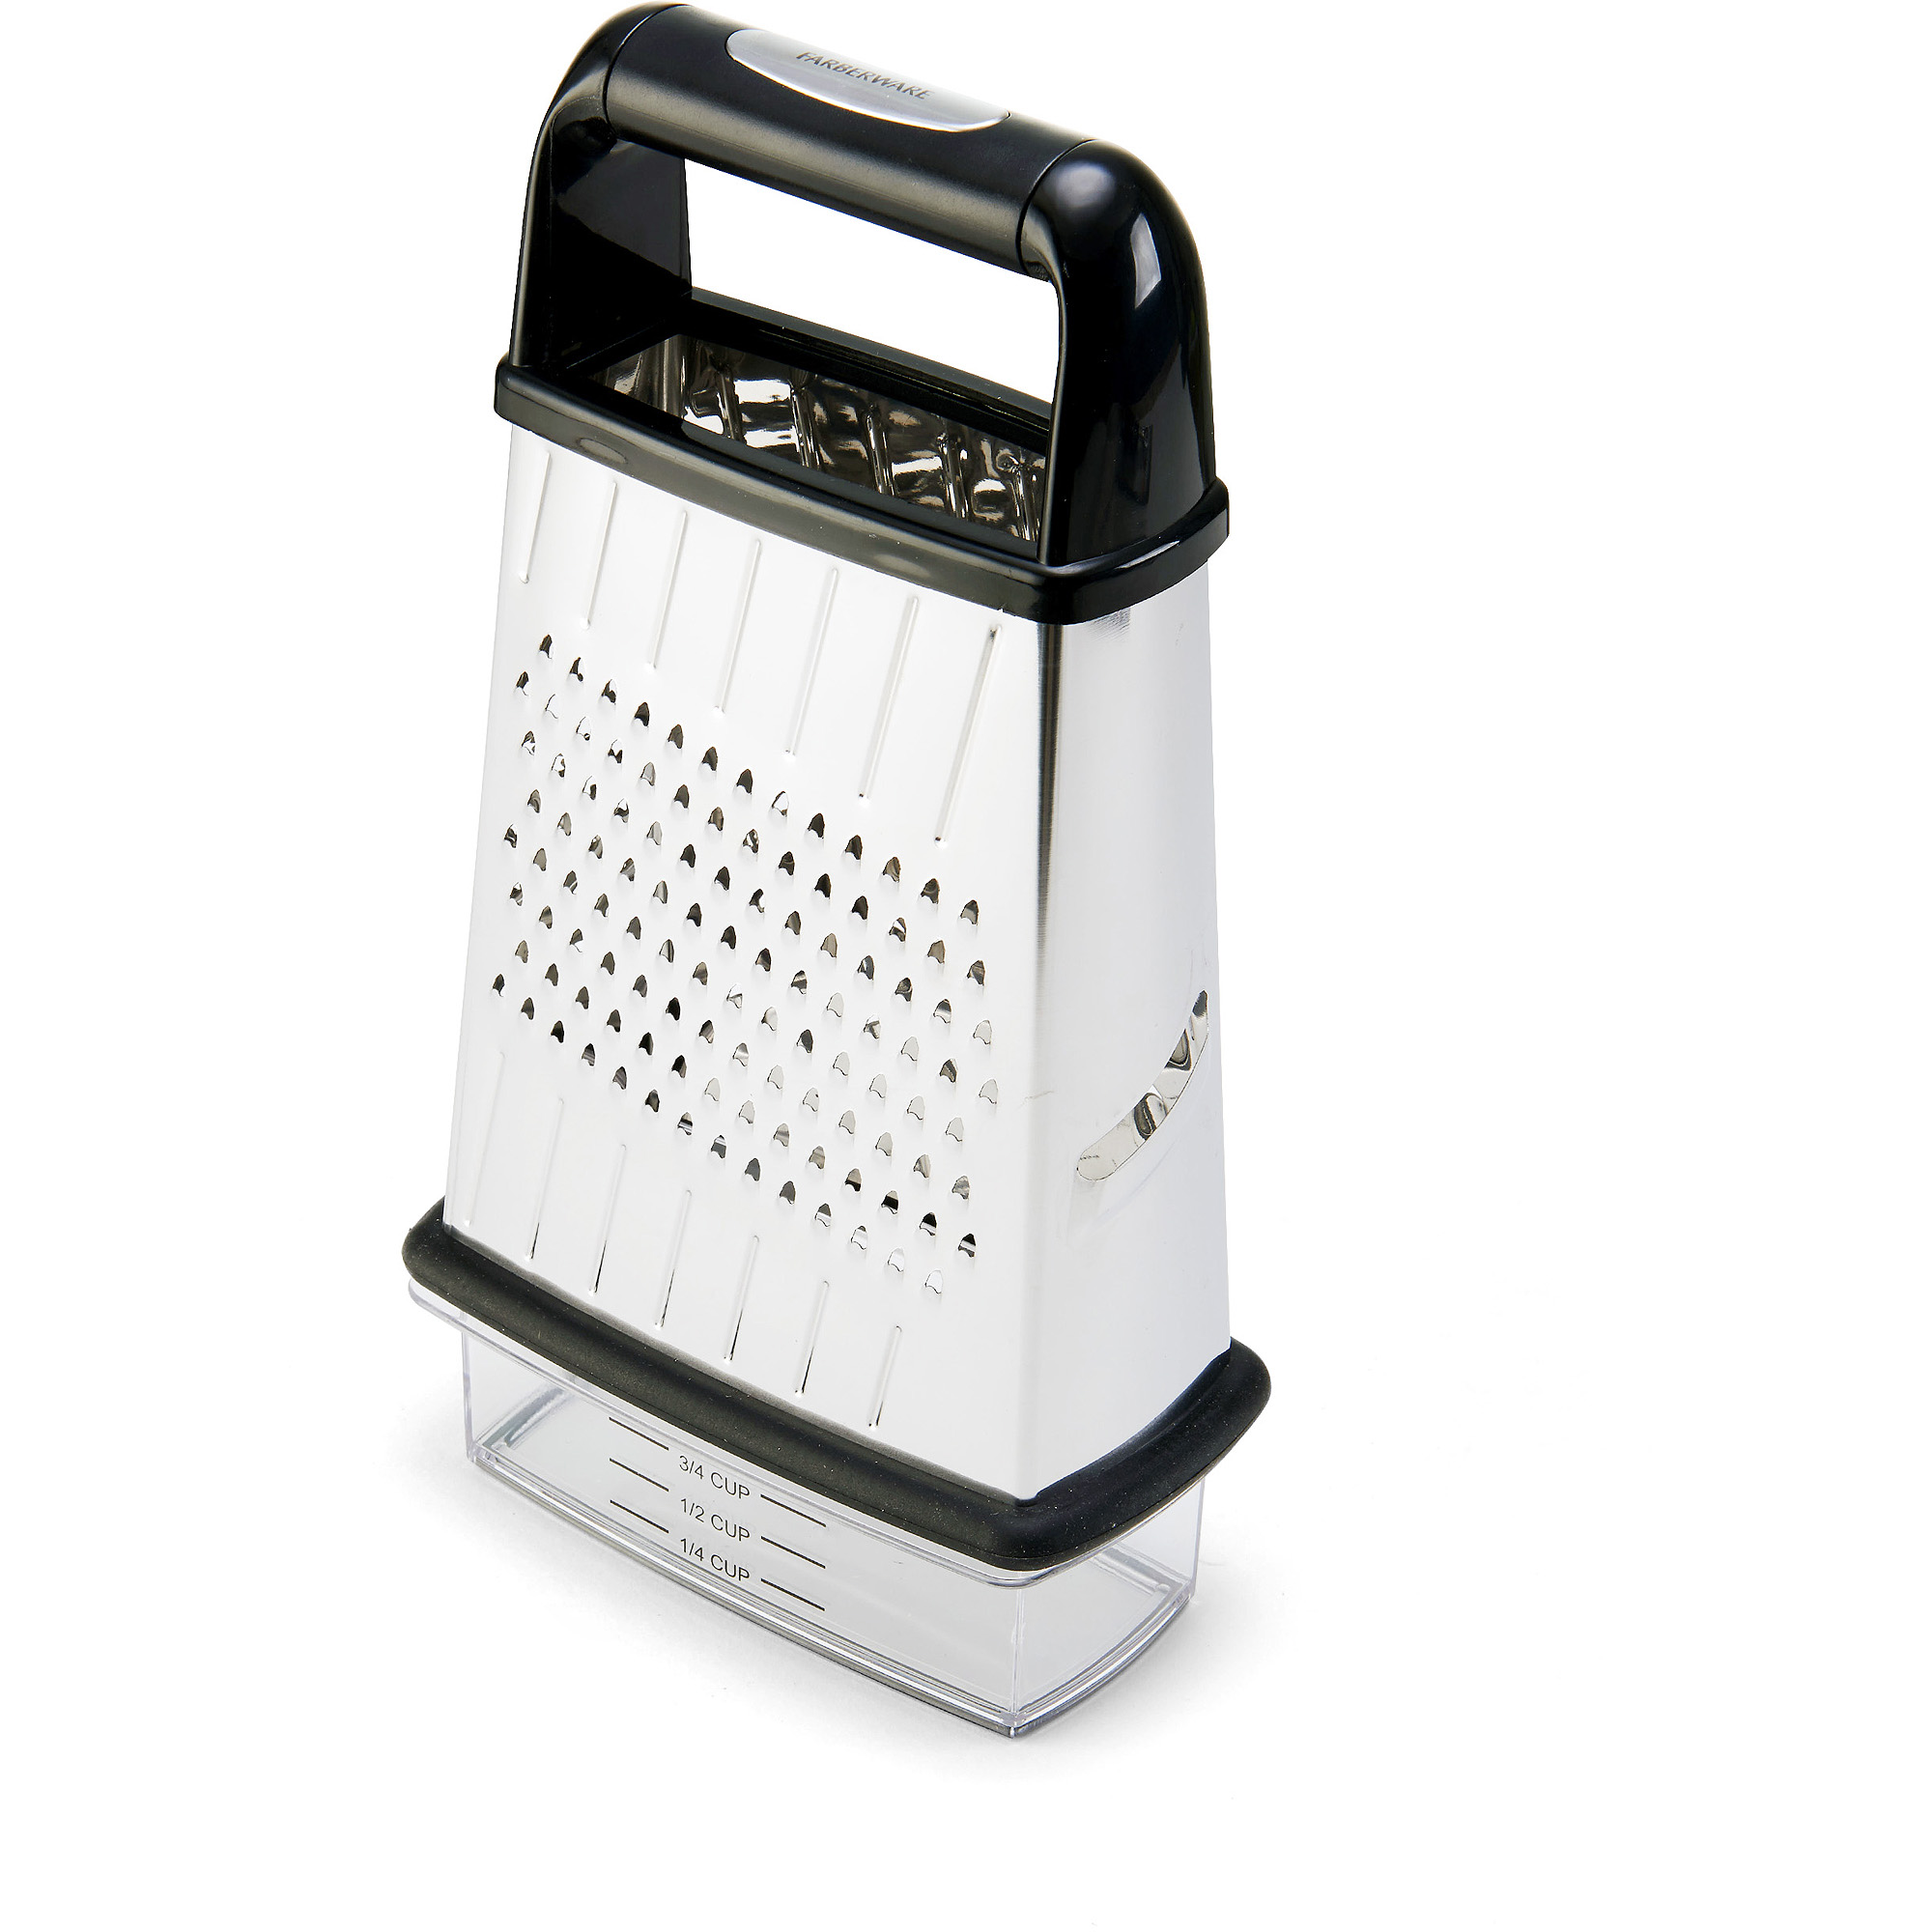 Farberware Professional Slim Box Grater with 2 Cup Storage Container